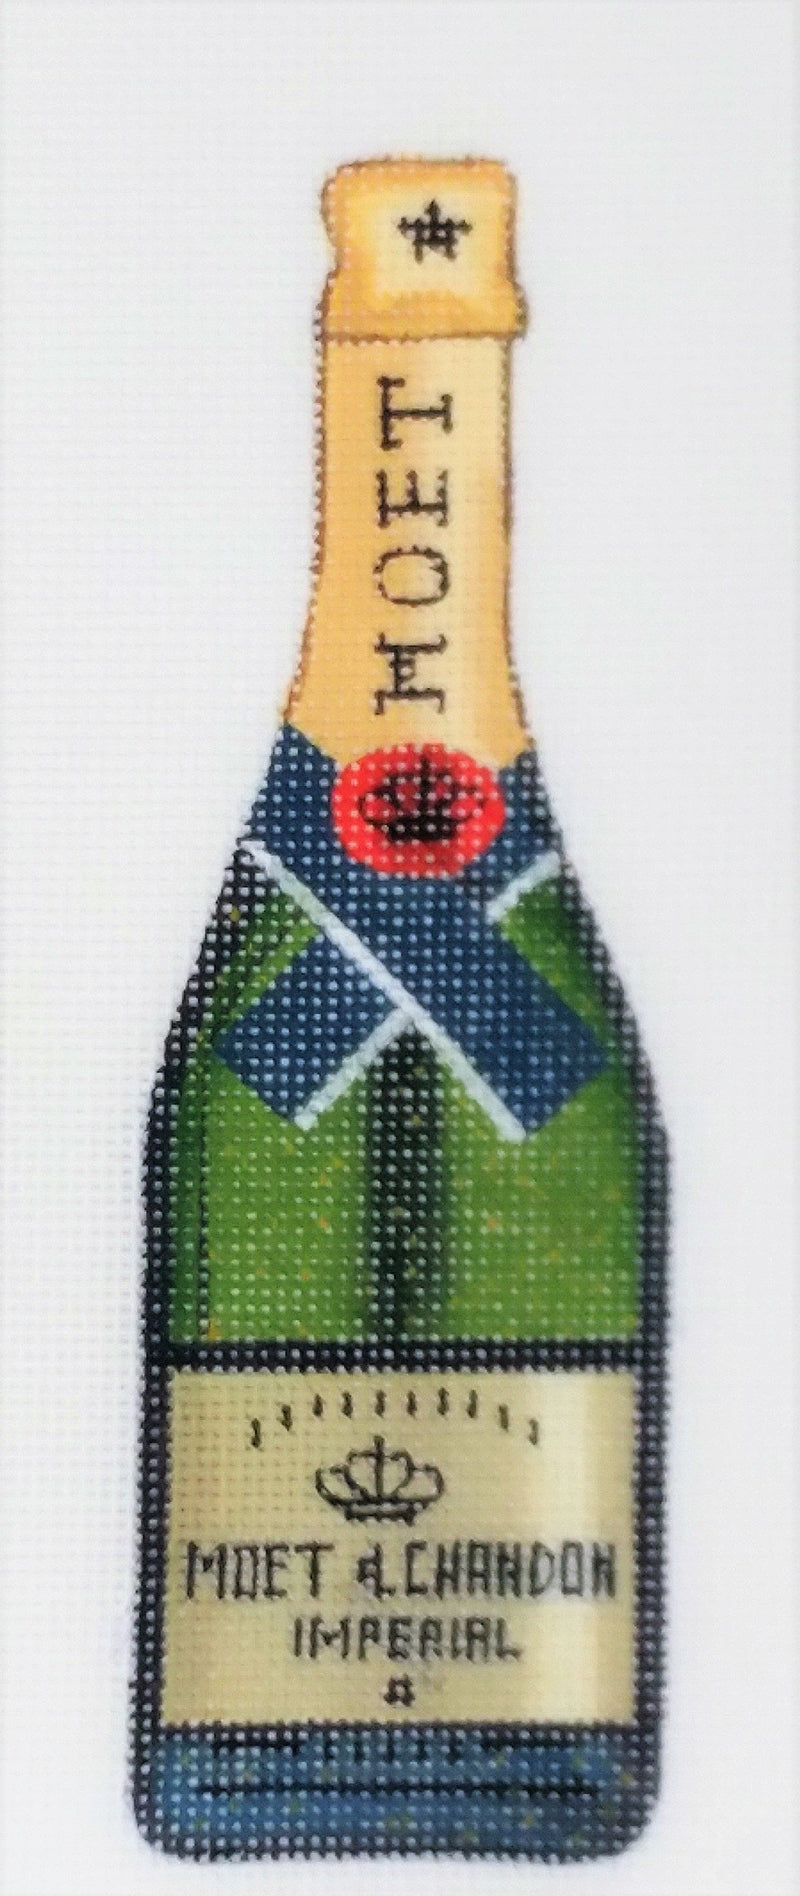 Moet & Chandon Ornament